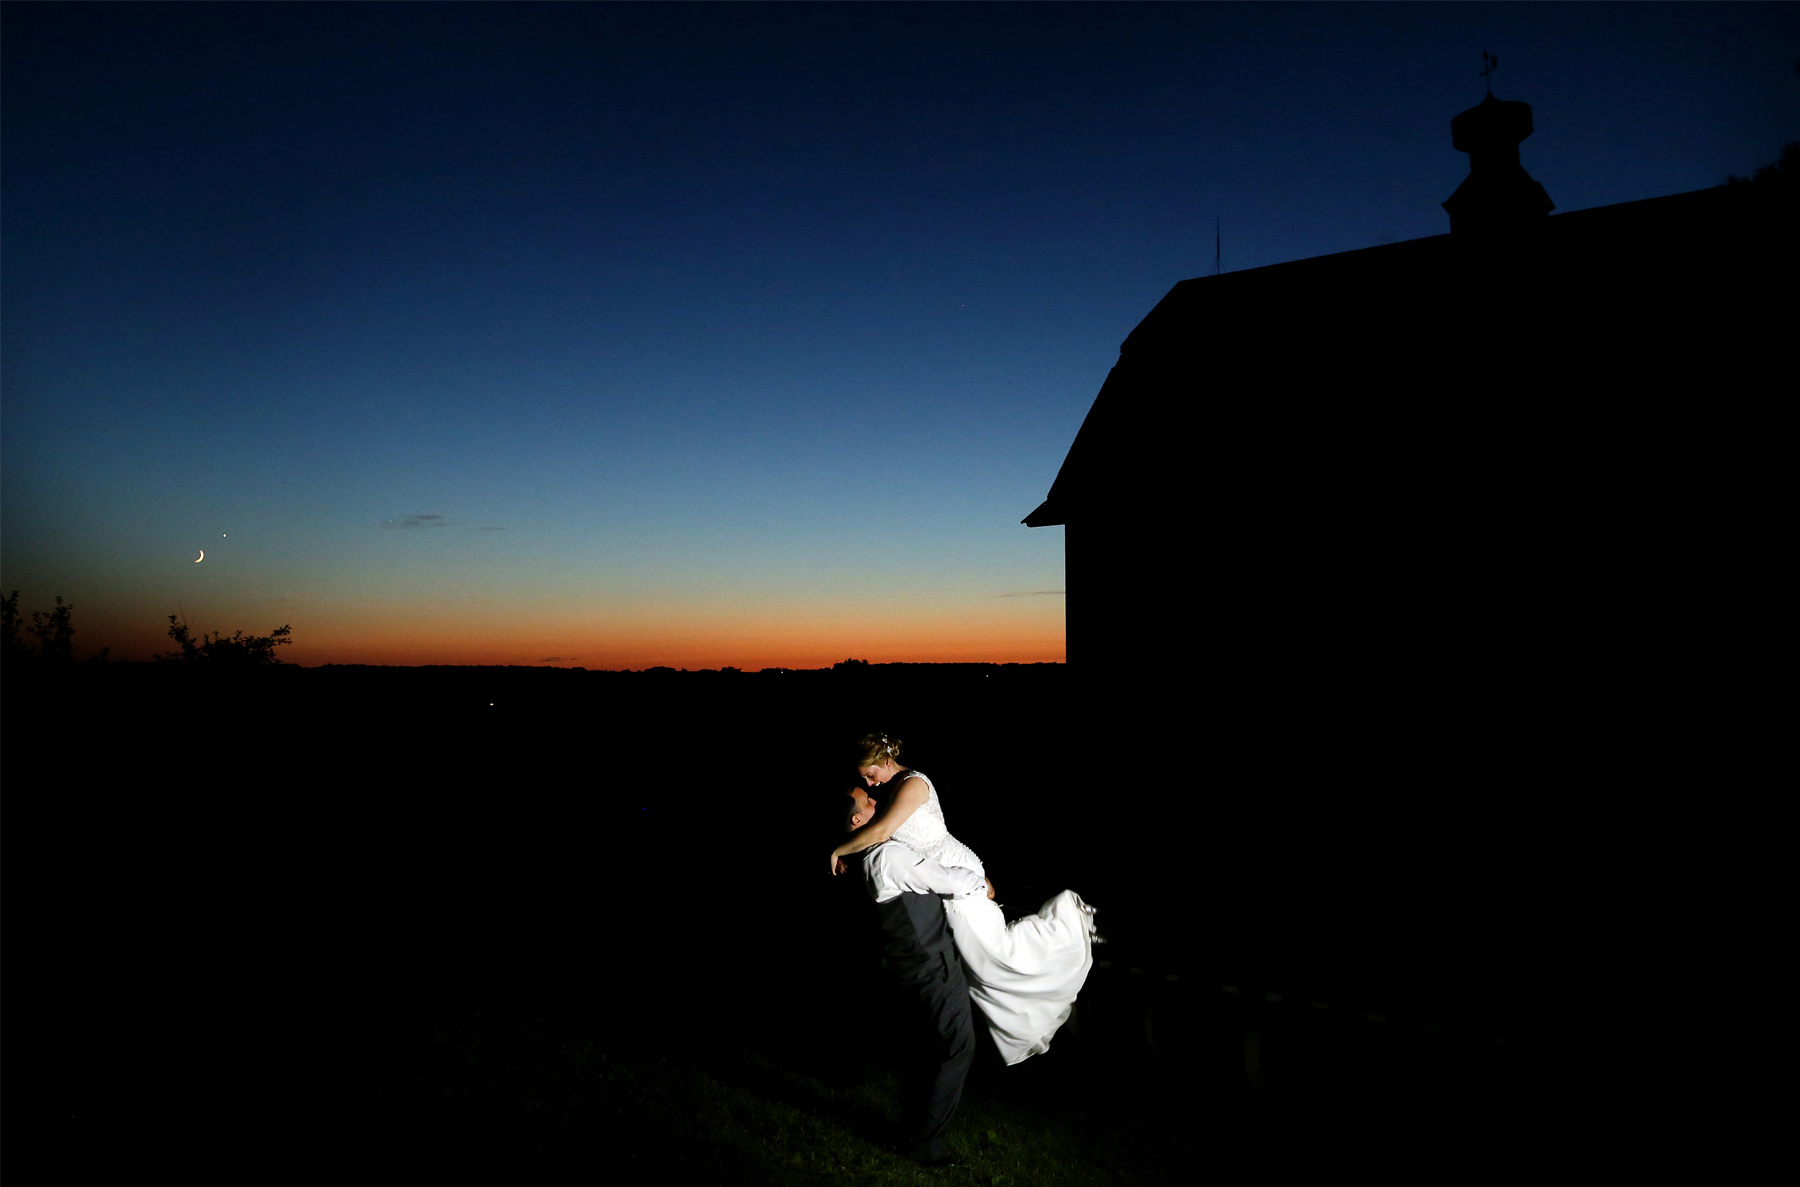 19-Minneapolis-Minnesota-Wedding-Photography-by-Vick-Photography-Minnesota-Harvest-Apple-Orchard-Night-Photography-Emilie-&-Giovanni.jpg